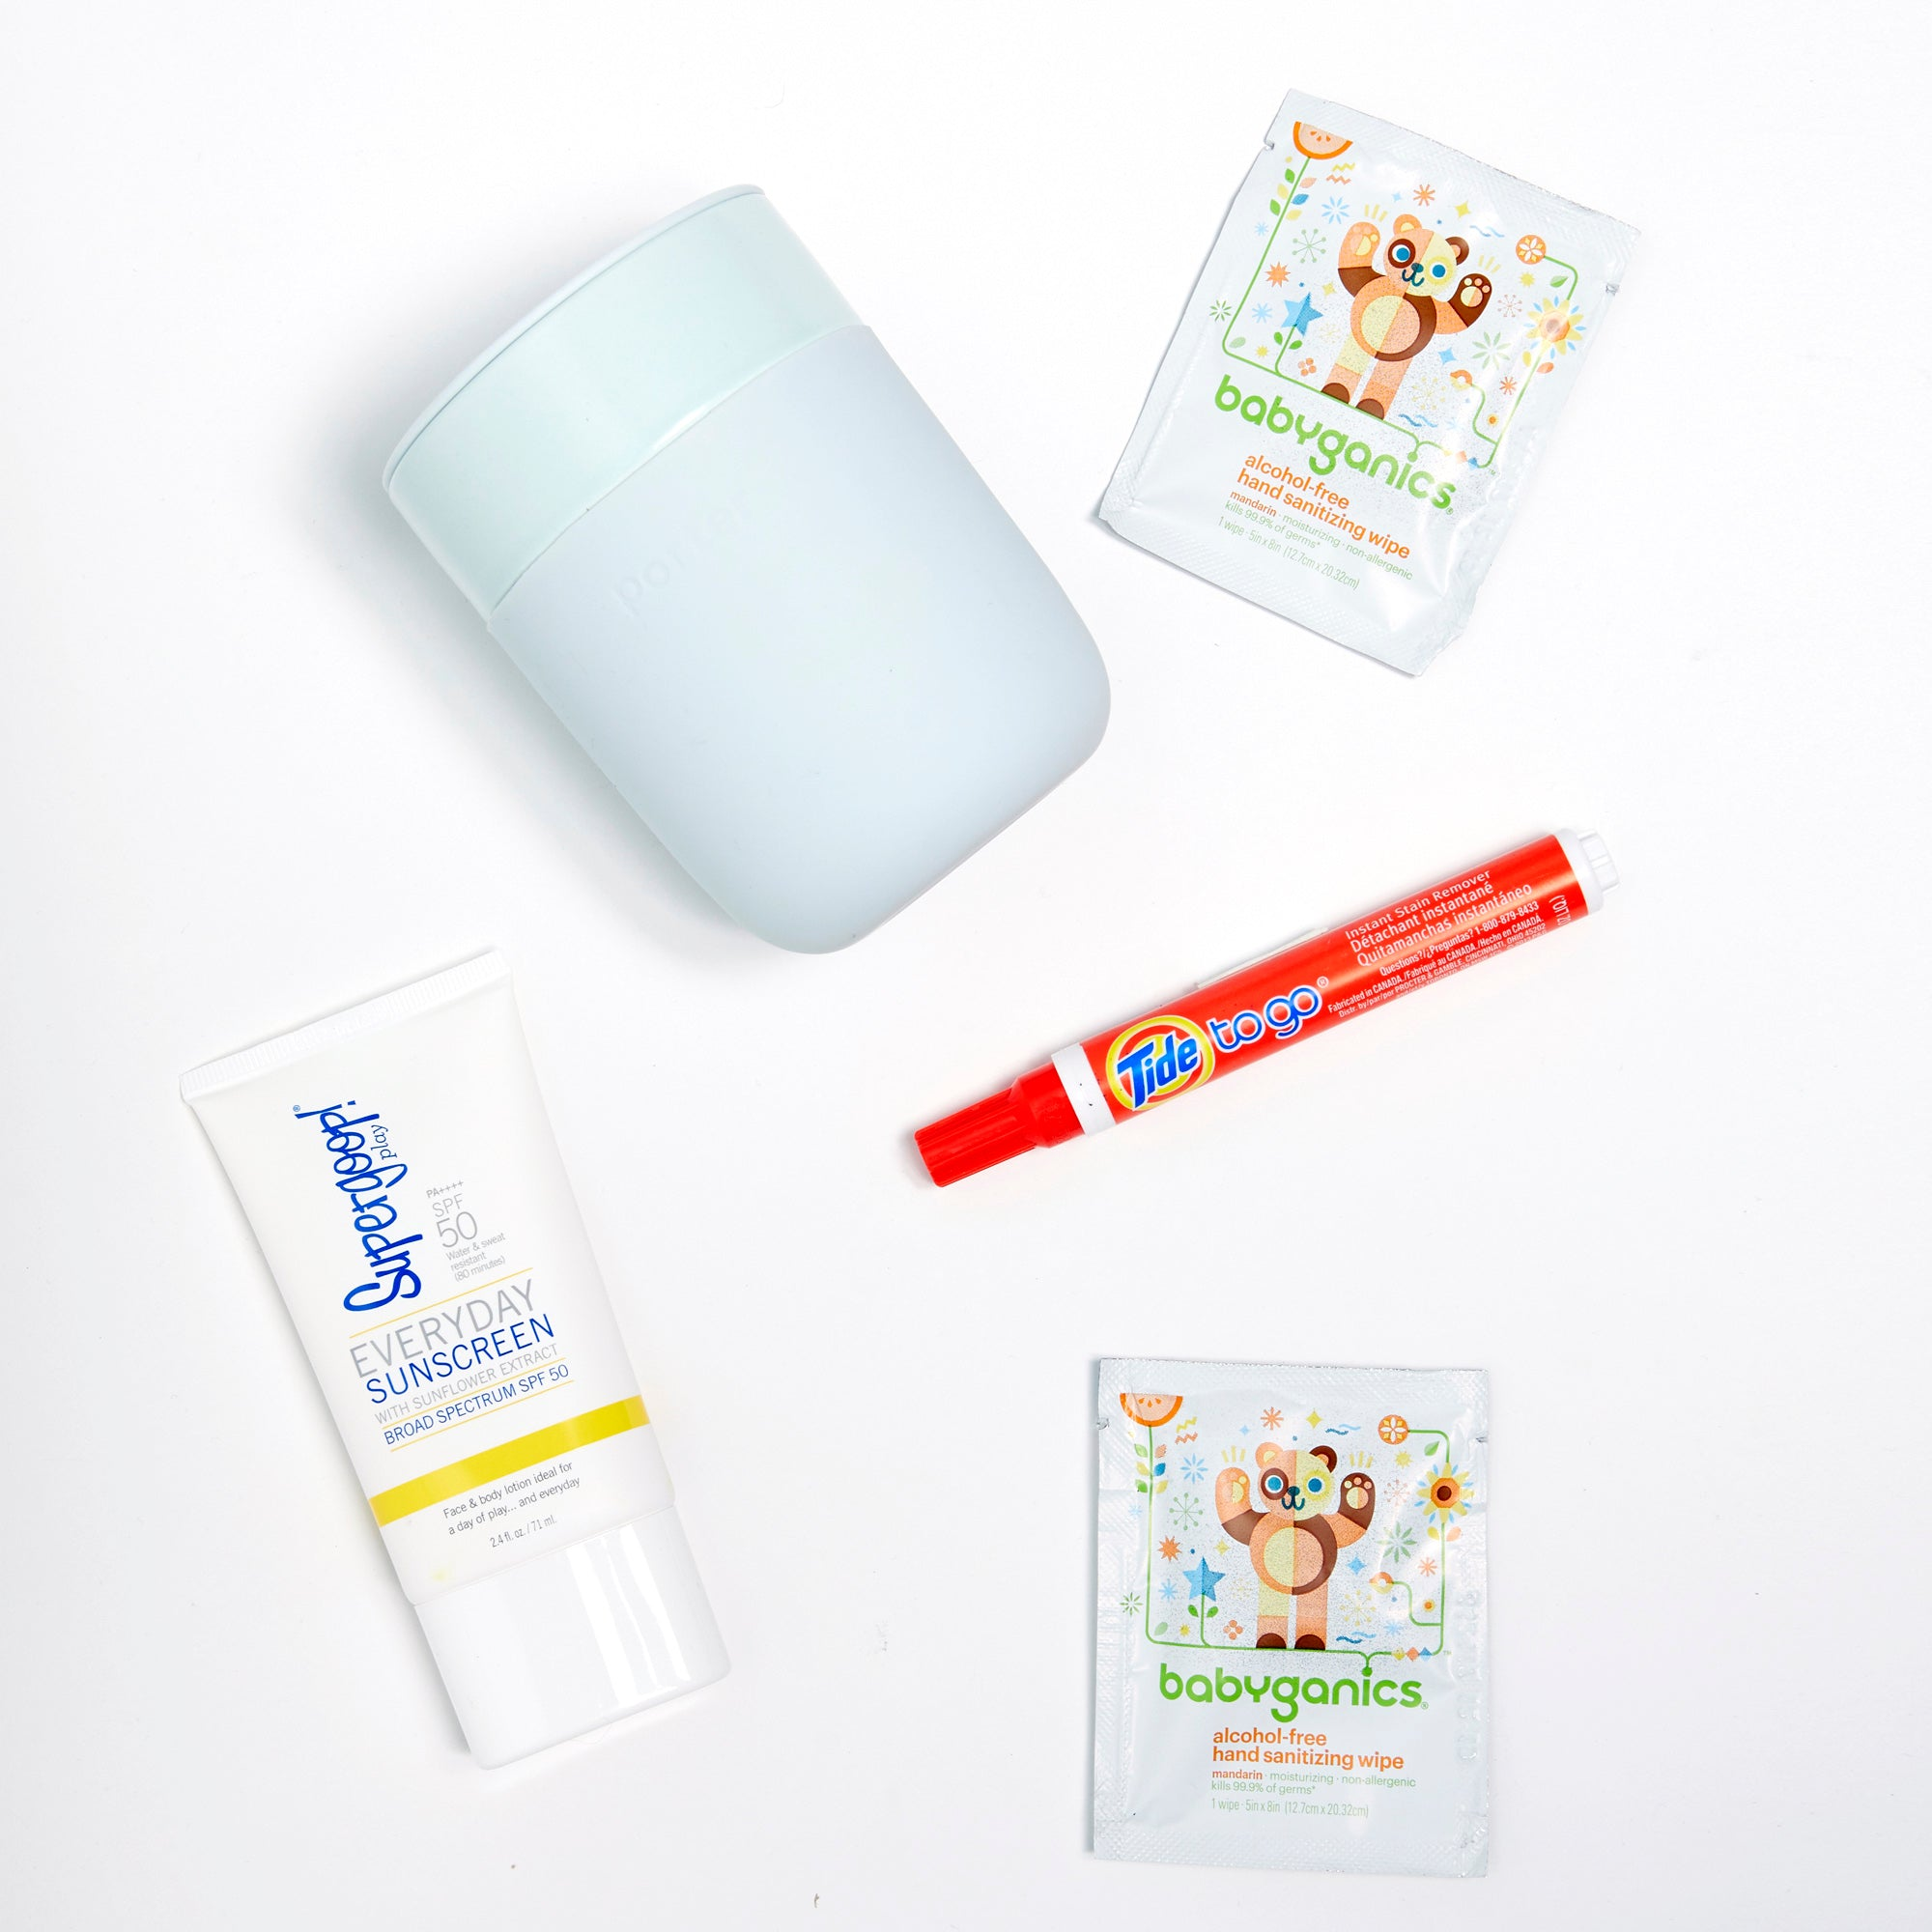 Tide-to-go, Babyganics wipes, Supergoop Everyday Sunscreen, Cup